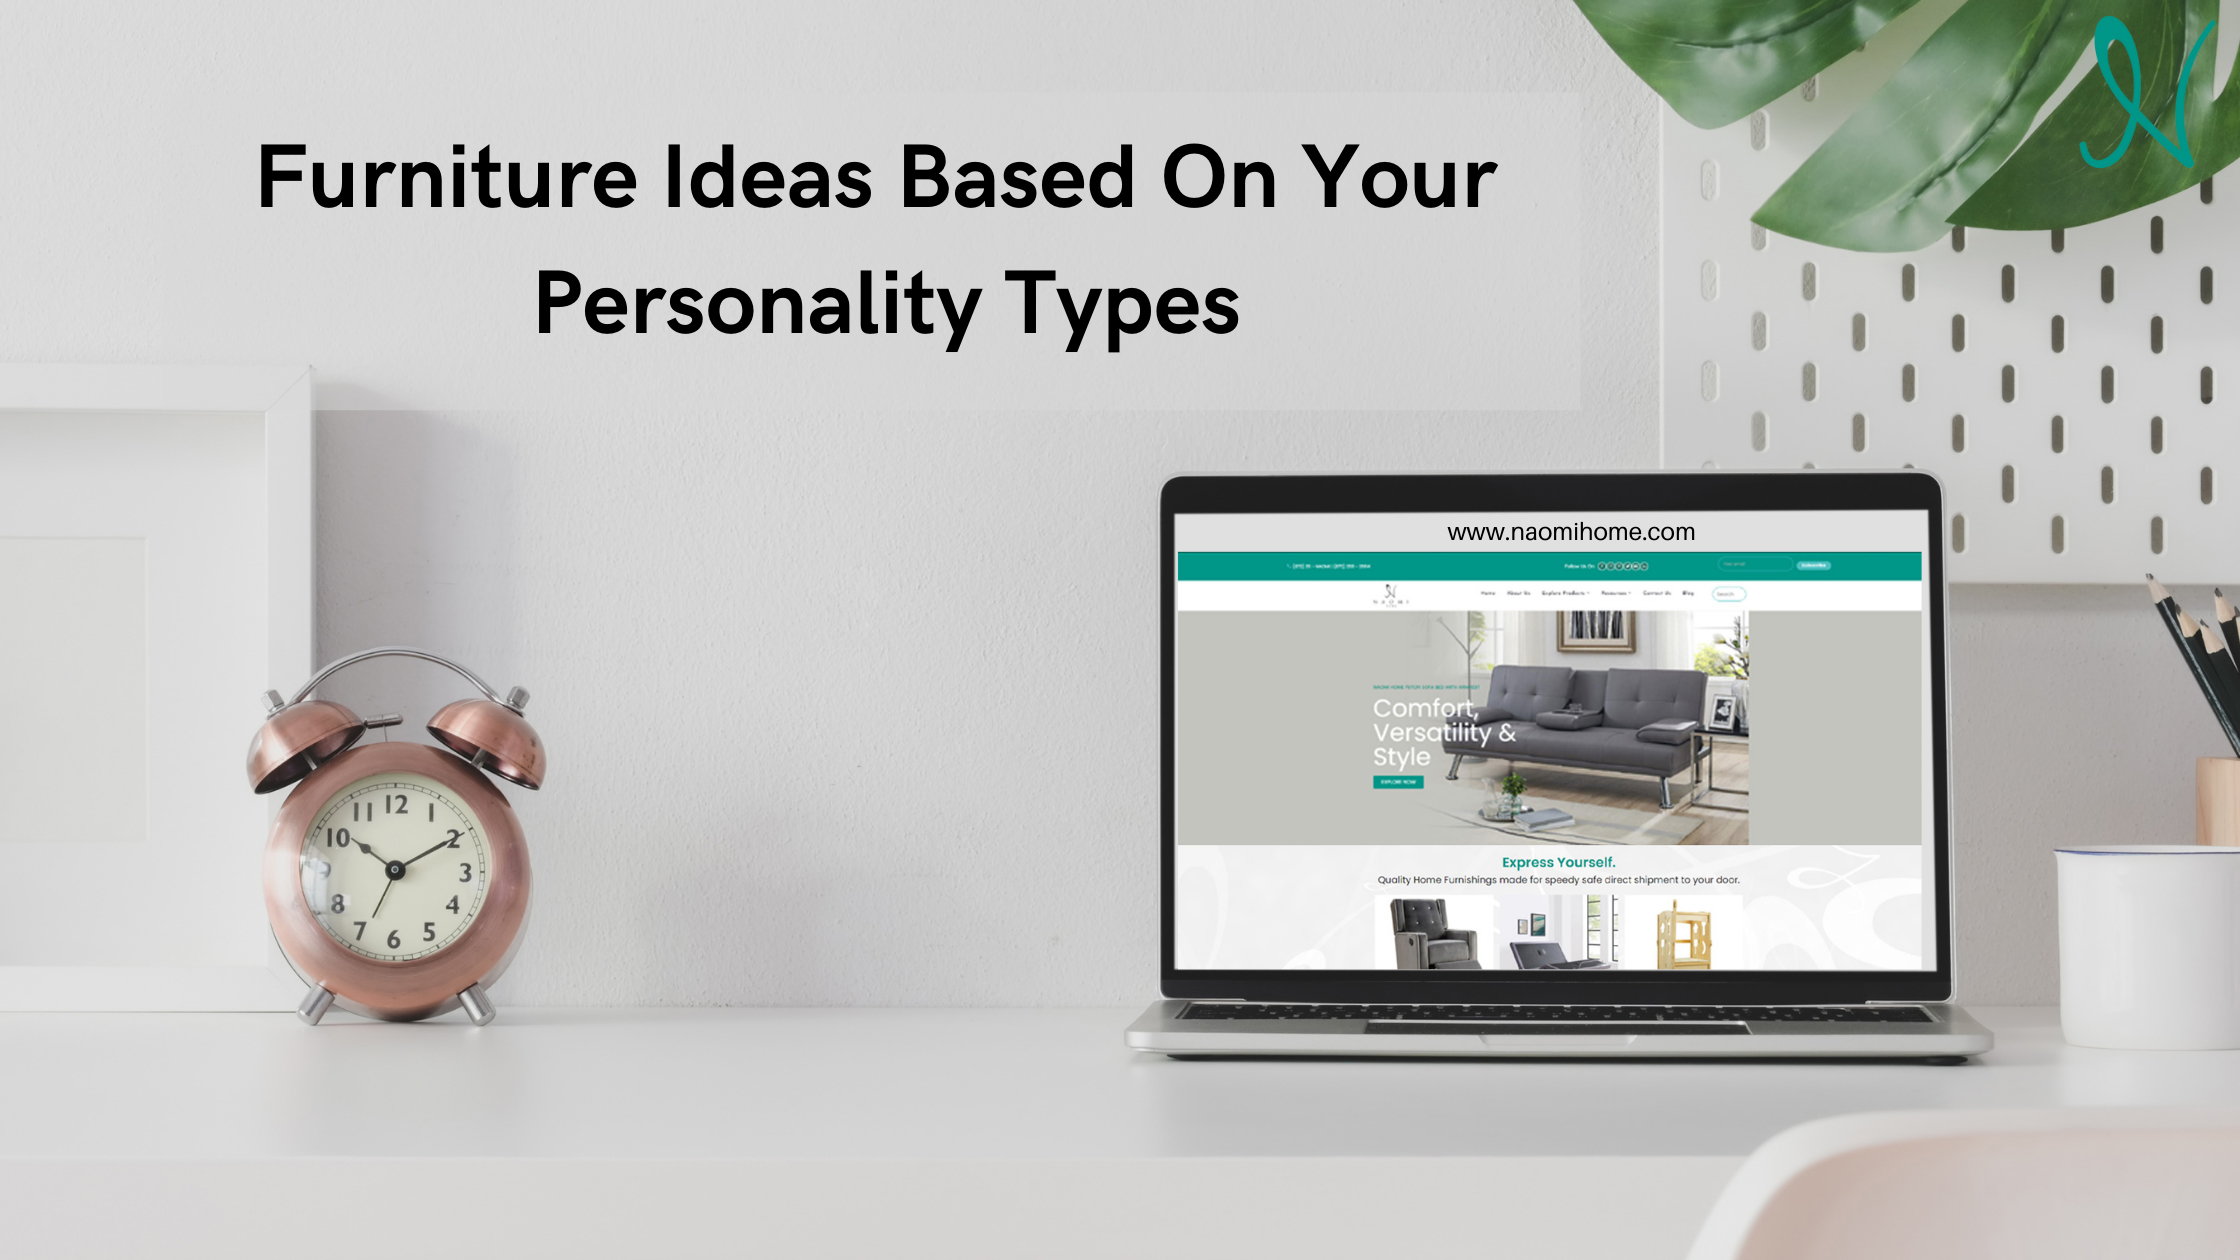 Furniture Ideas Based On Your Personality Types